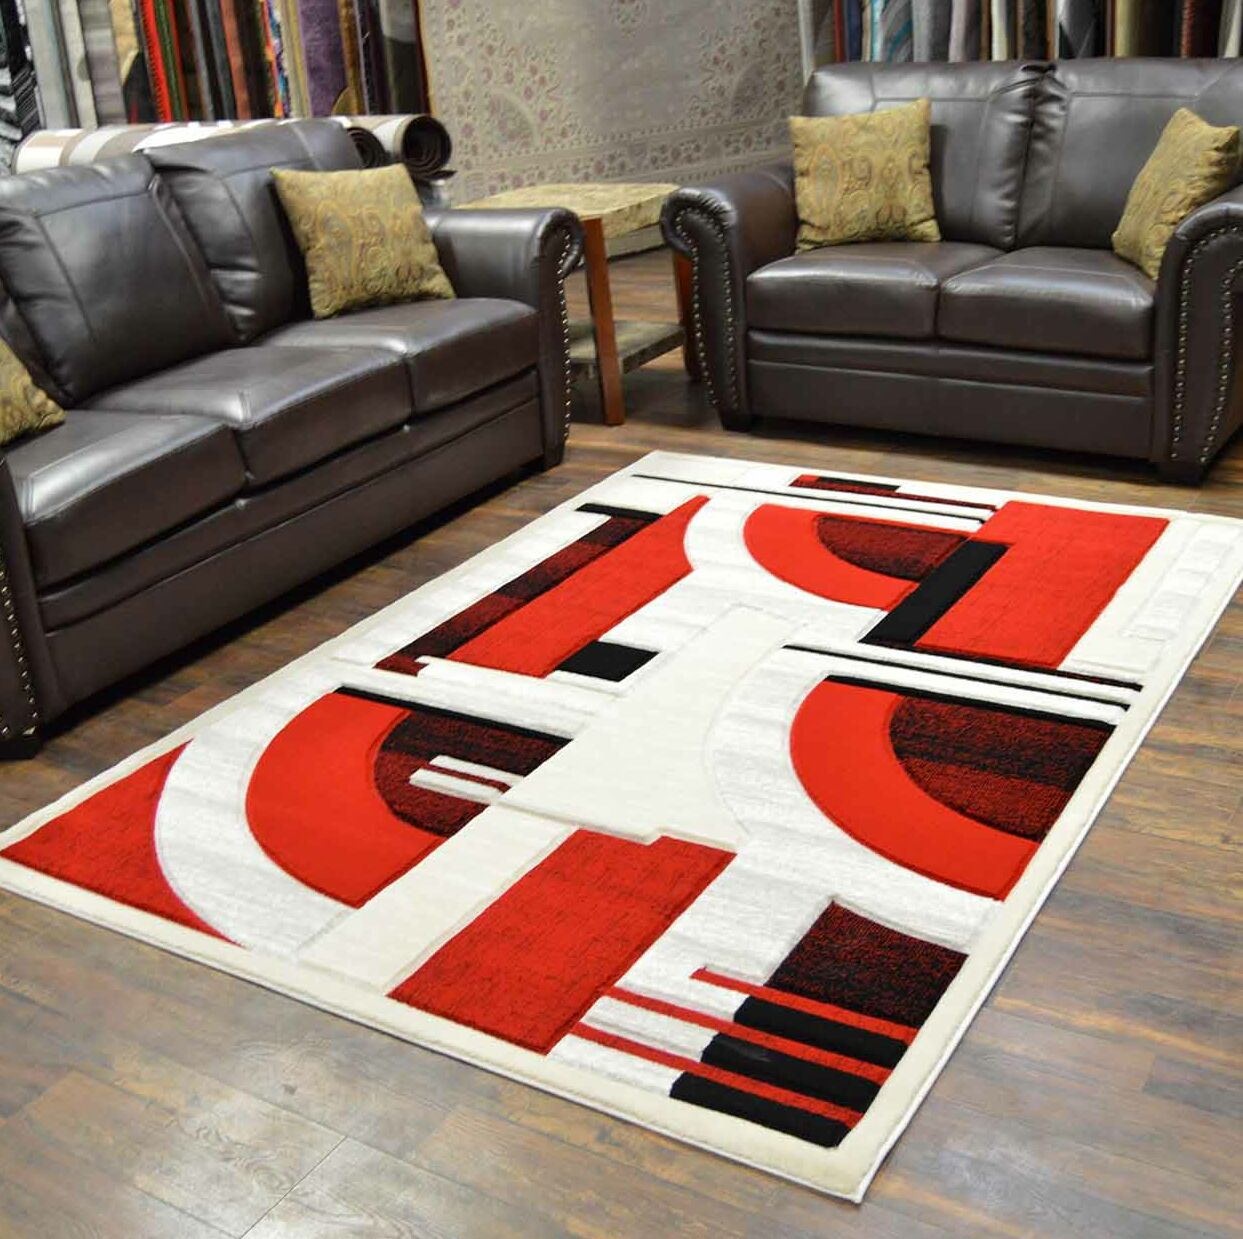 Mccampbell 3D Modern Contemporary Abstract Black/Cream/Red Area Rug